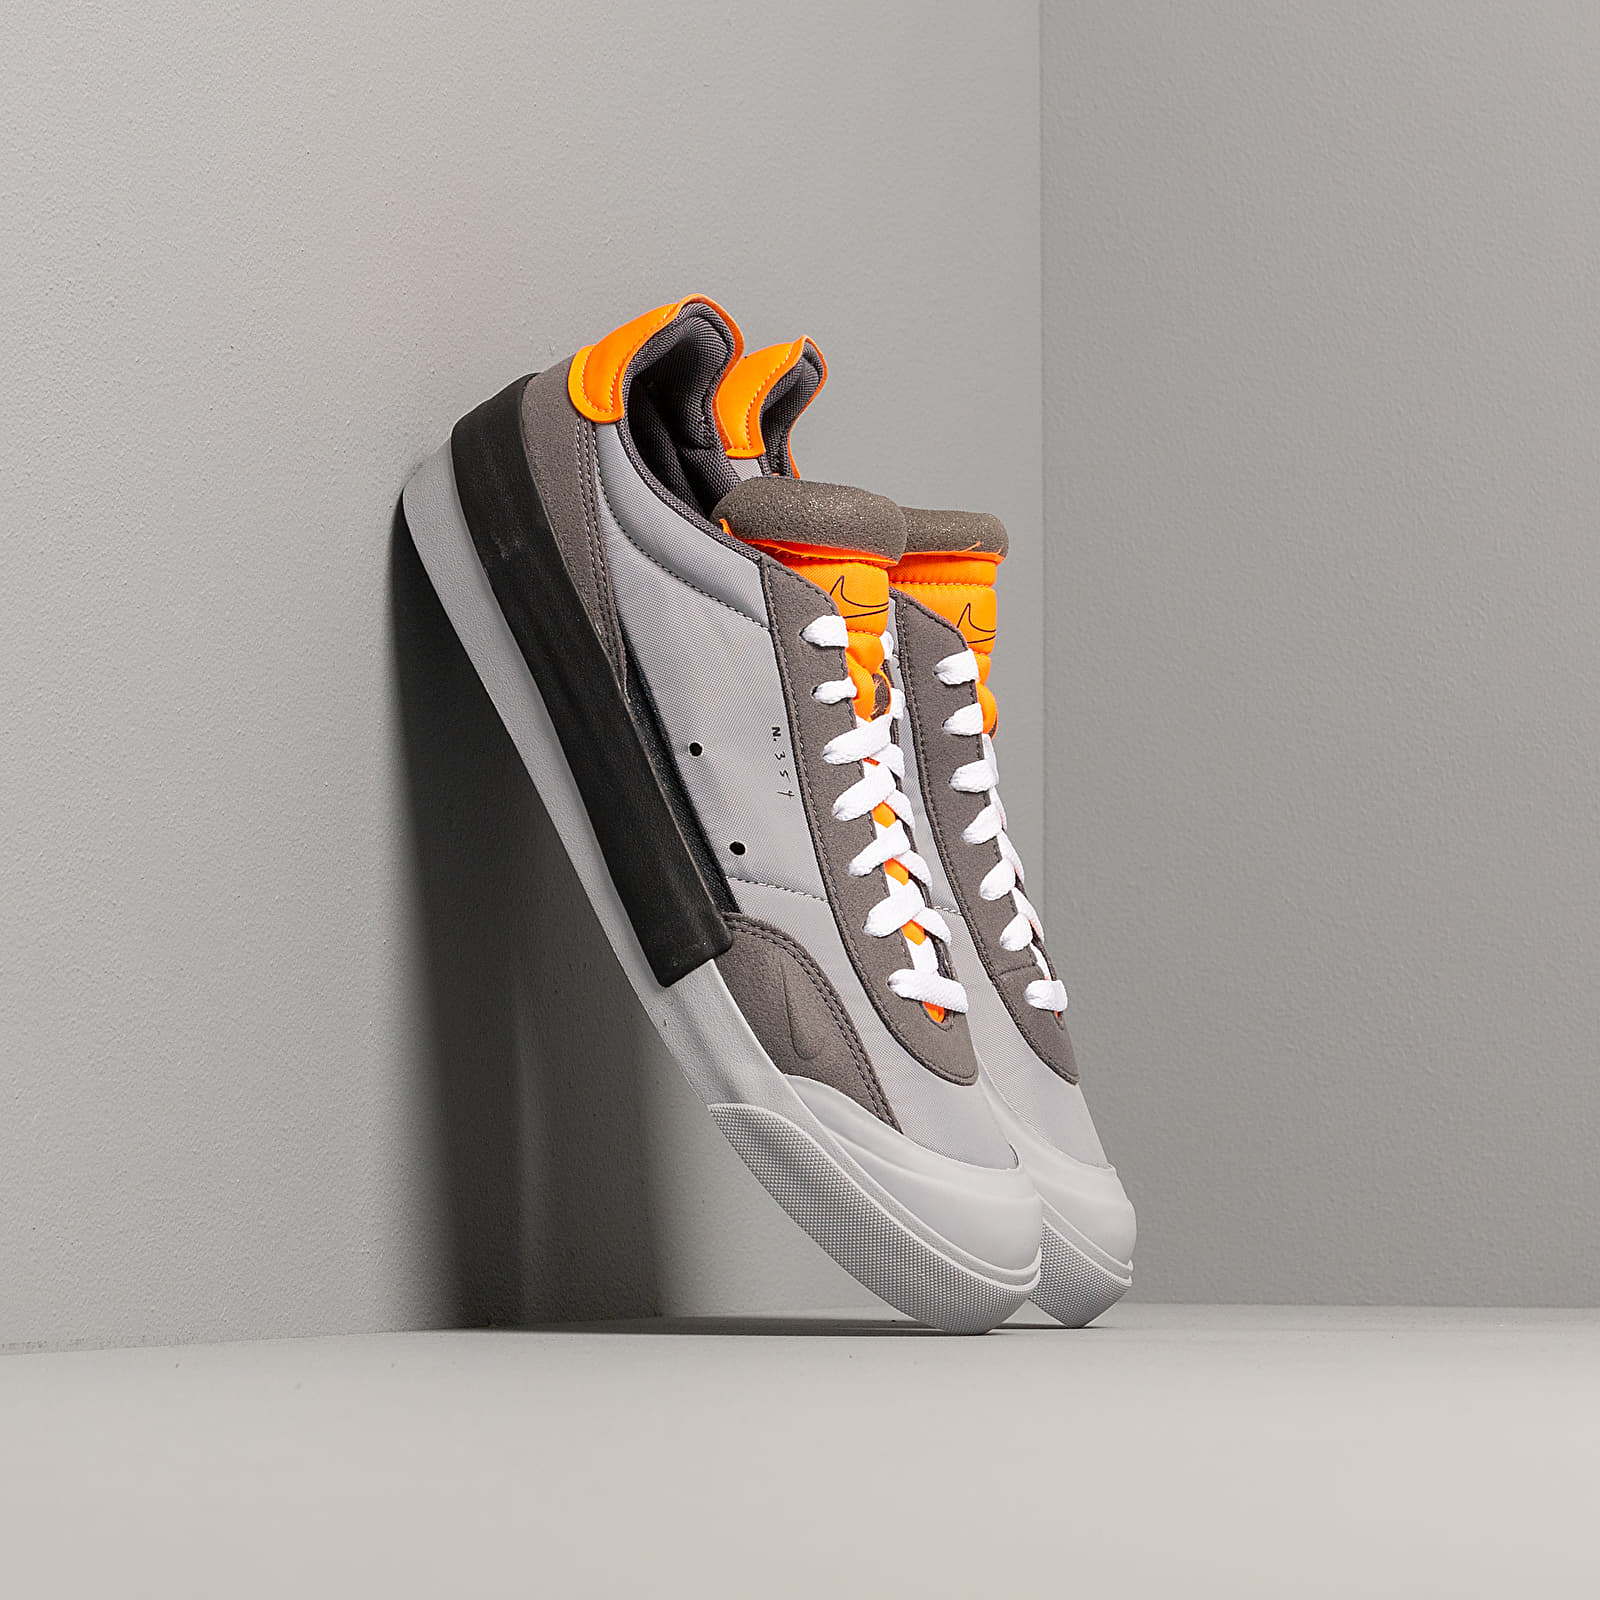 Férfi cipők Nike Drop-Type Wolf Grey/ Black-Total Orange-Dark Grey